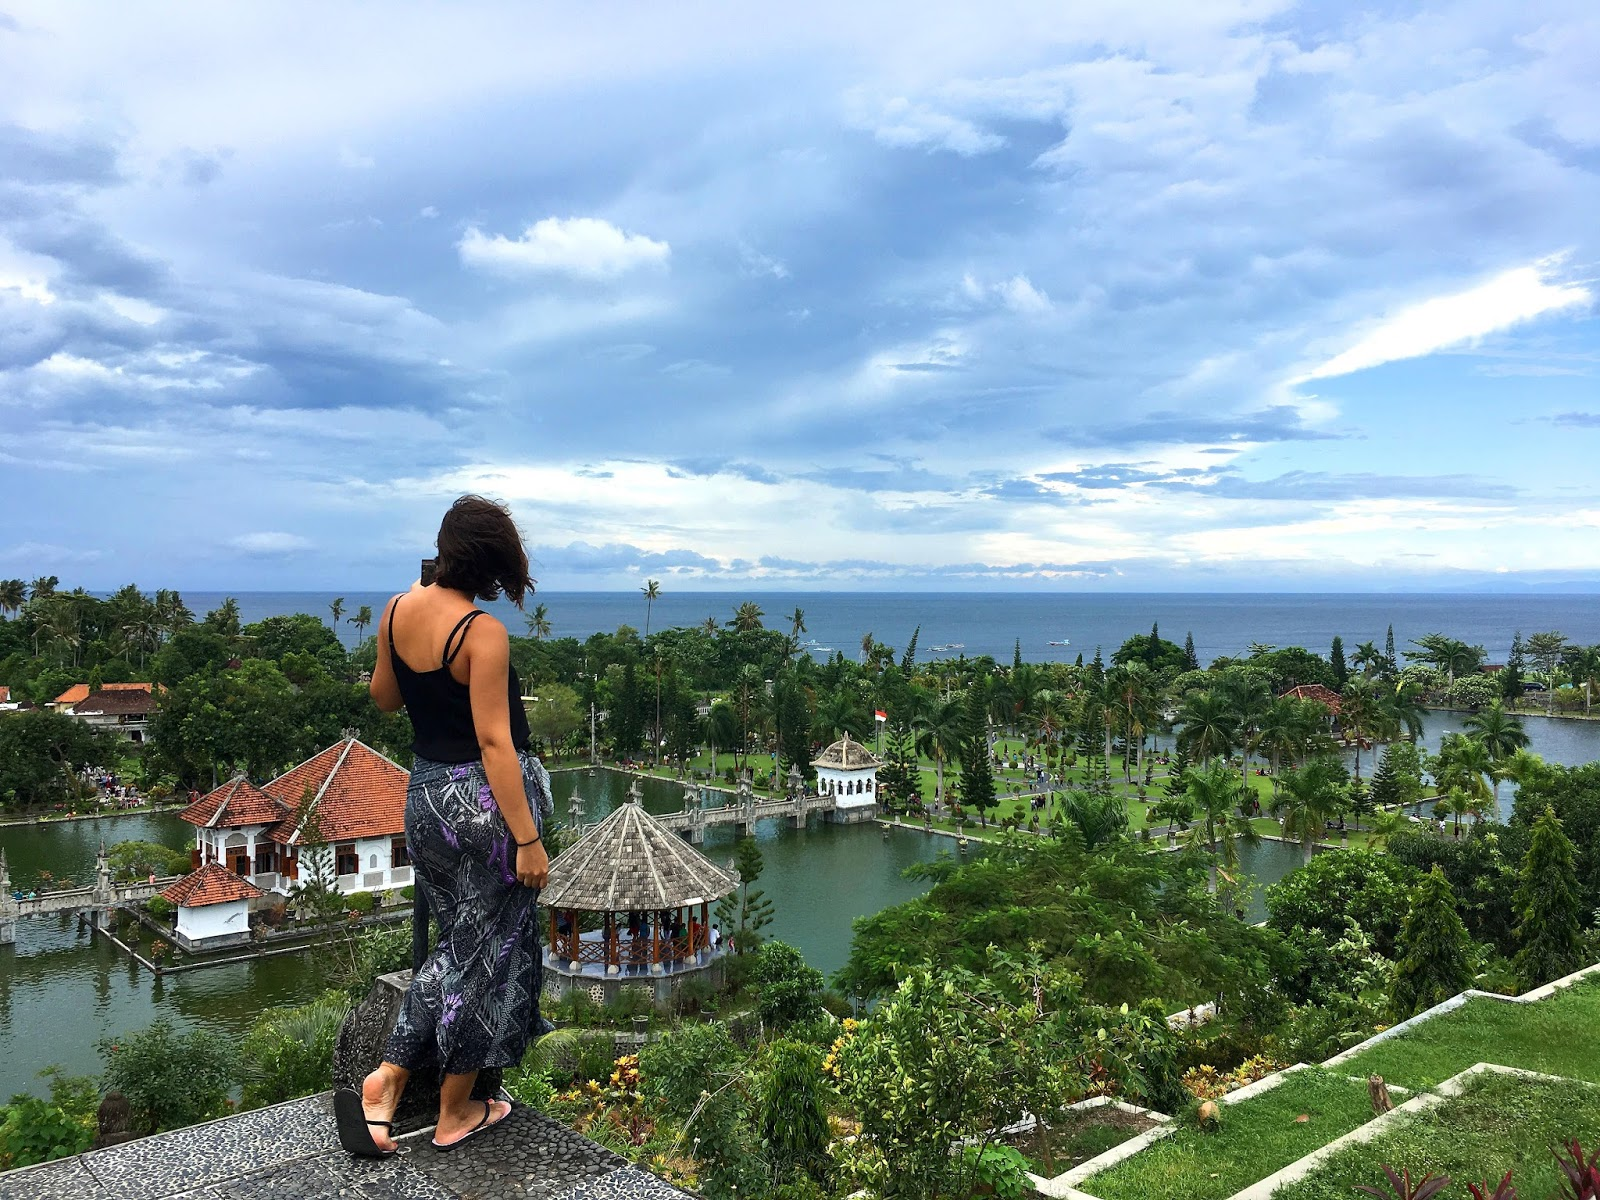 Be prepared for your first visit to the amazing places in Bali with this top 10 Bali guide.